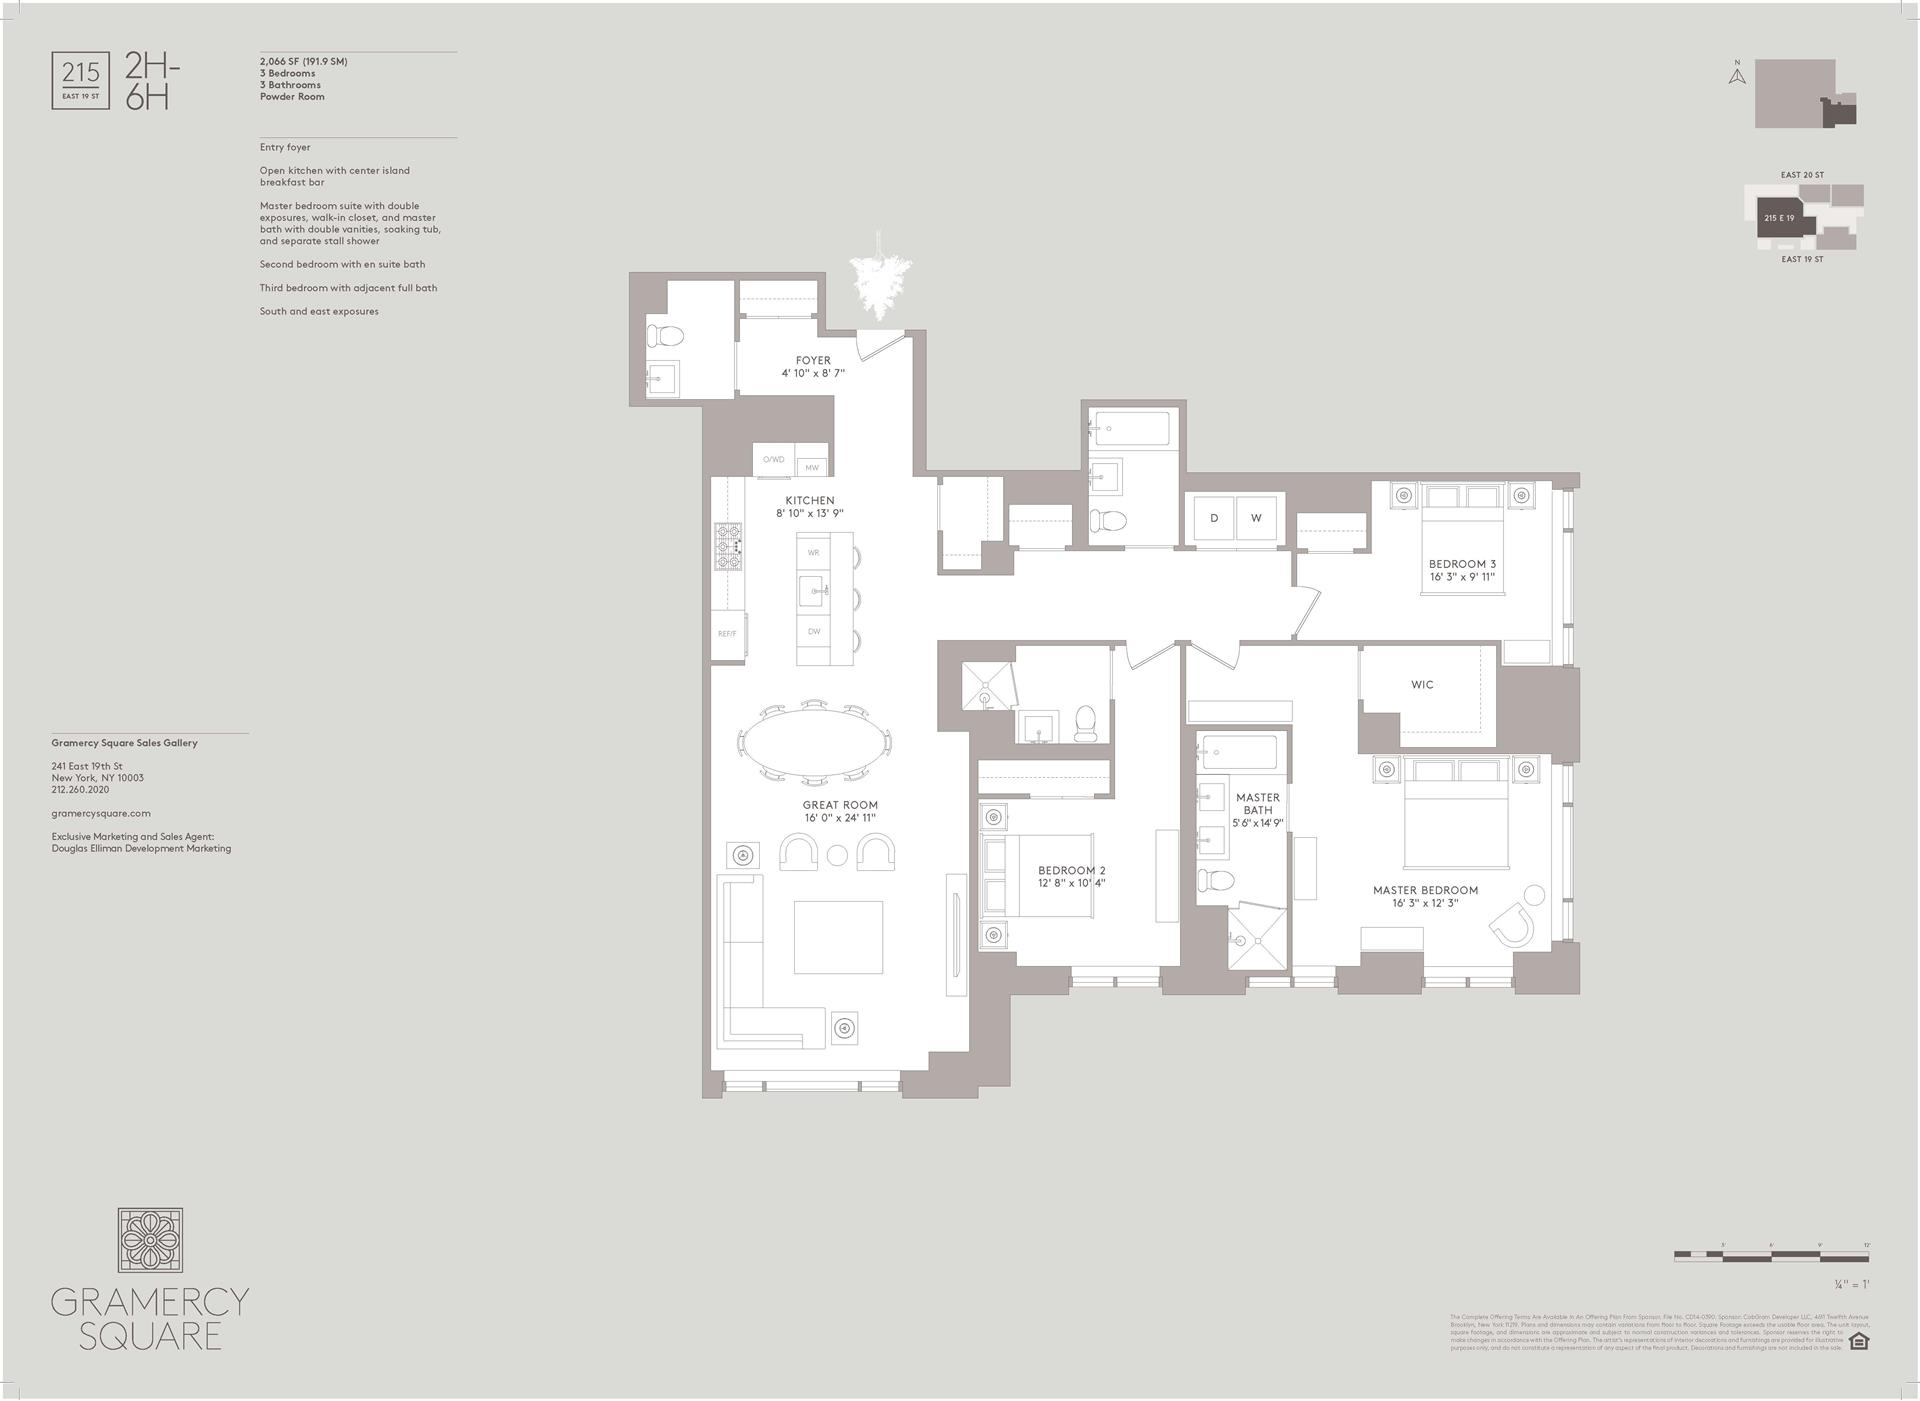 Floor plan of Gramercy Square, 215 East 19th St, 4H - Gramercy - Union Square, New York